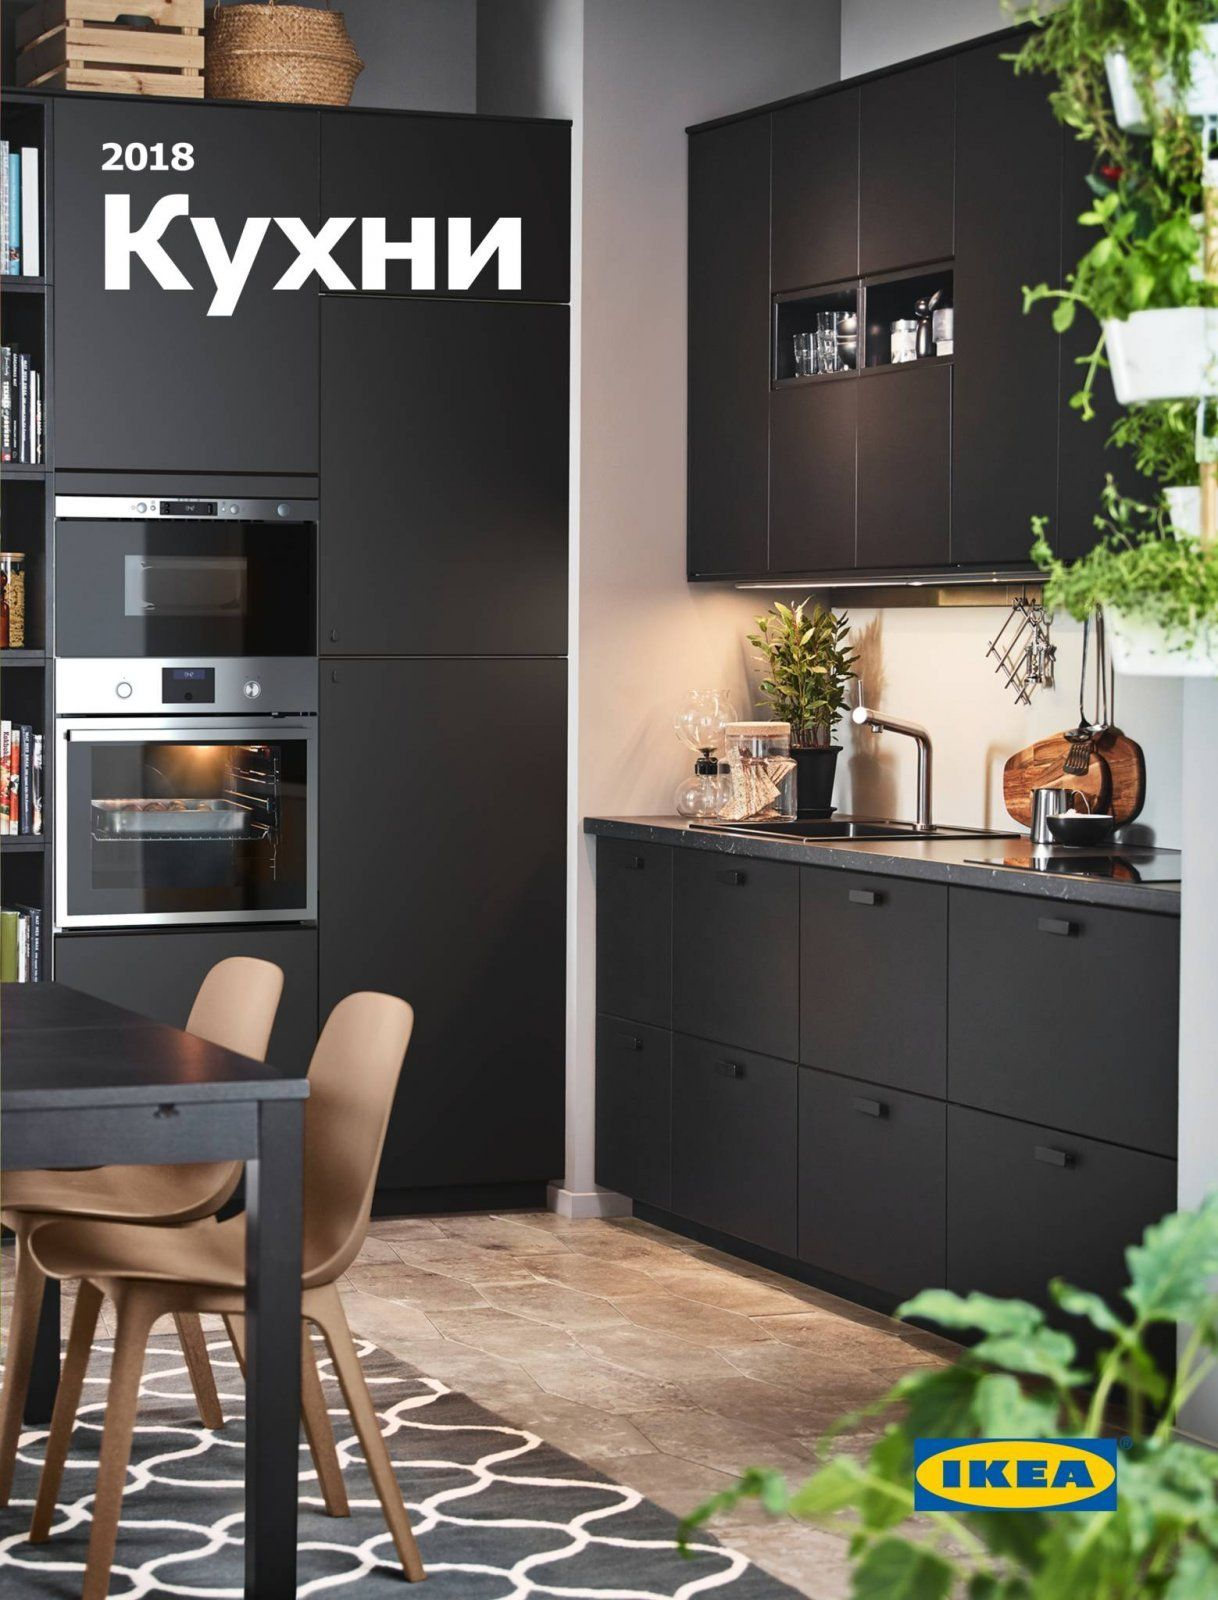 Ikea Küche Family ИКЕА брошура до 31 12 58417 Broshura Bg Home Design Interior